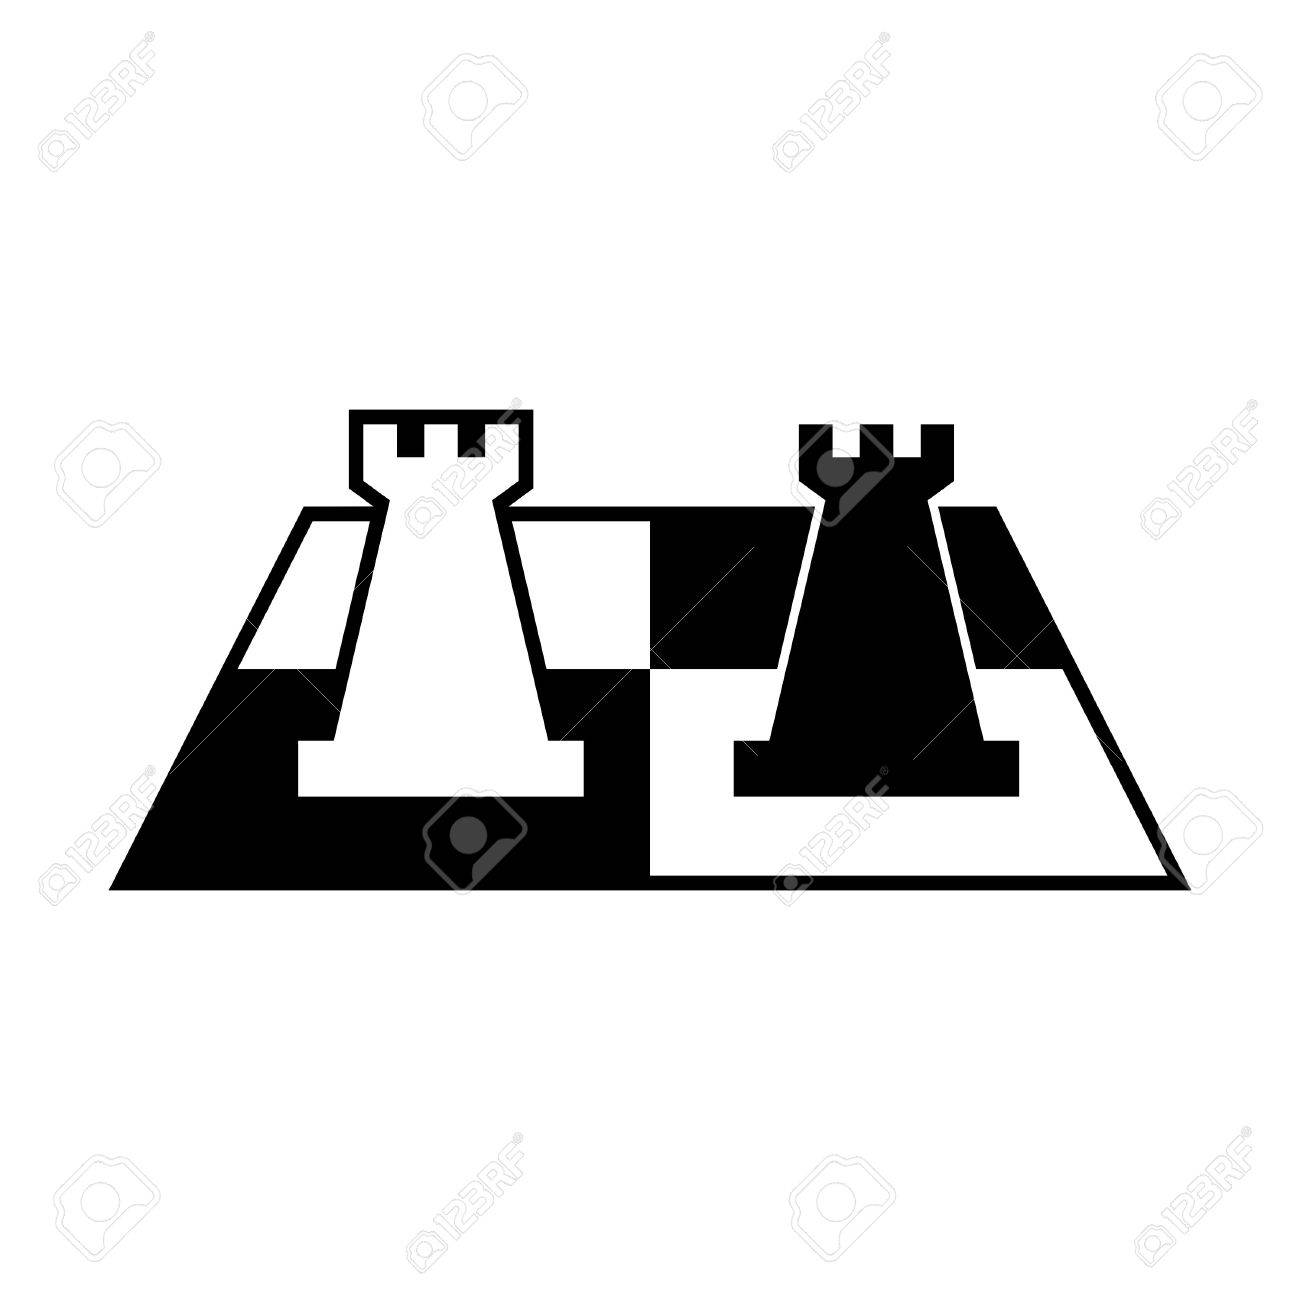 Chess symbol royalty free cliparts vectors and stock chess symbol stock vector 70380555 biocorpaavc Gallery